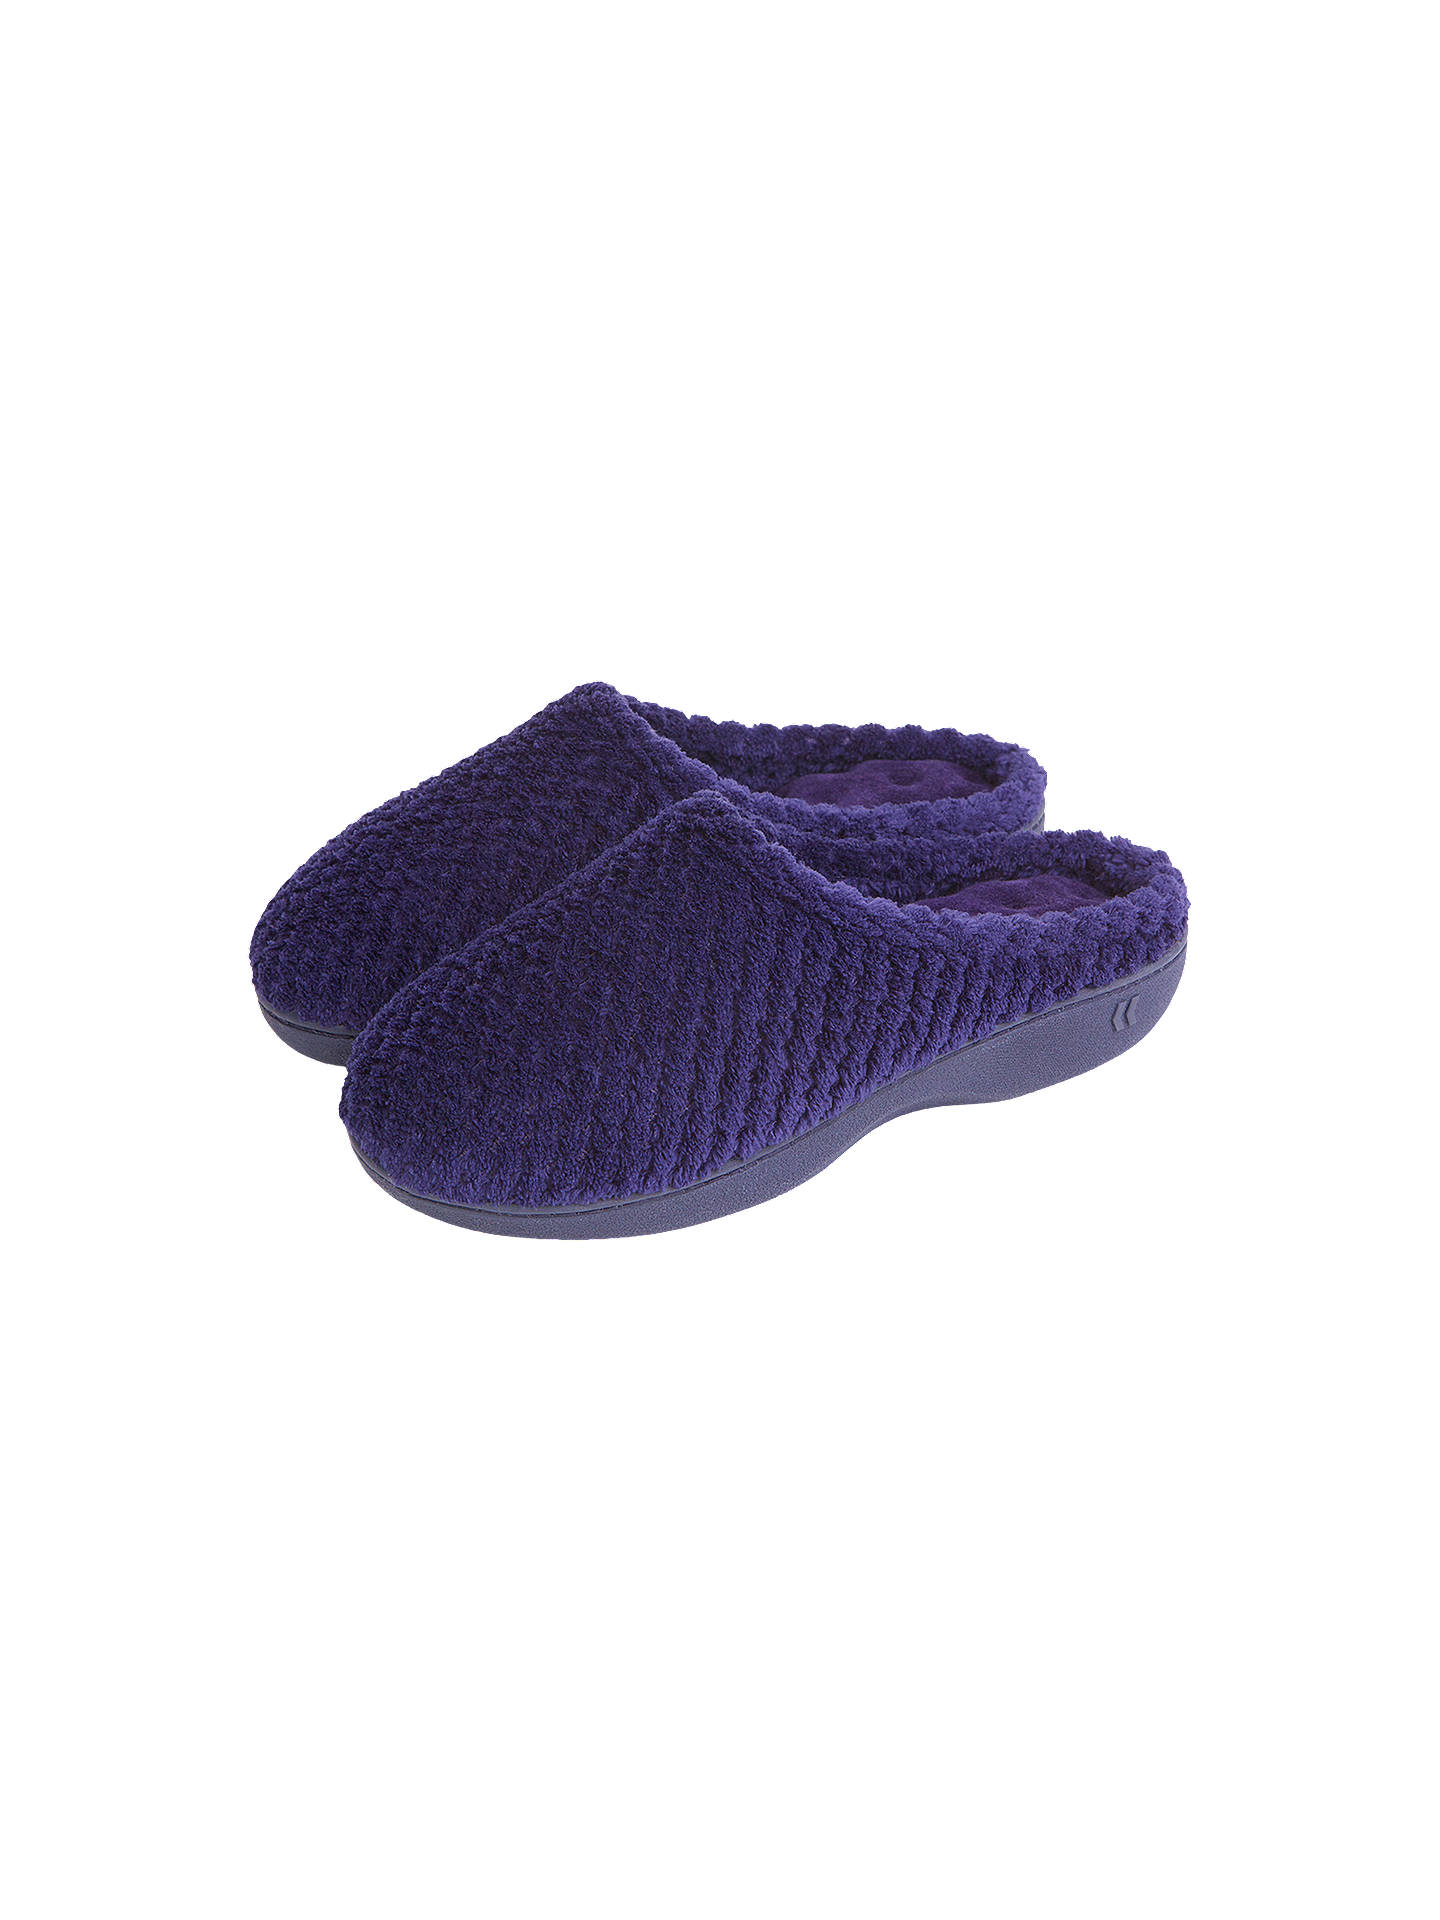 f4f2be0d6f3d1 totes Popcorn Pillowstep Mule Slippers at John Lewis & Partners